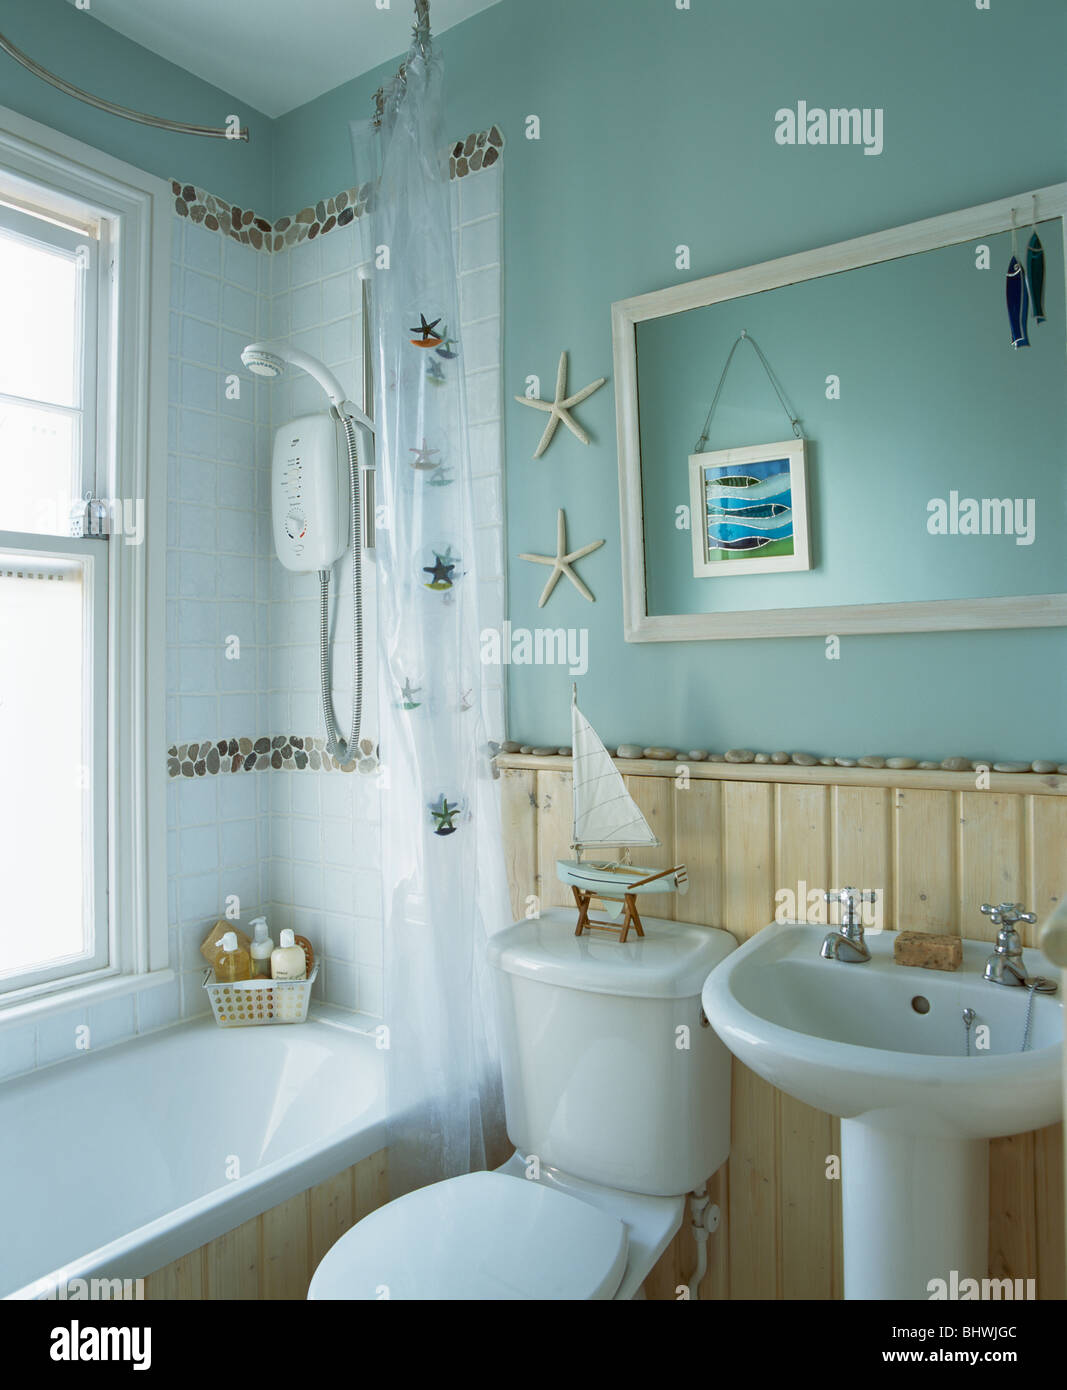 Tongue+groove dado paneling in small economy-style pale turquoise ...